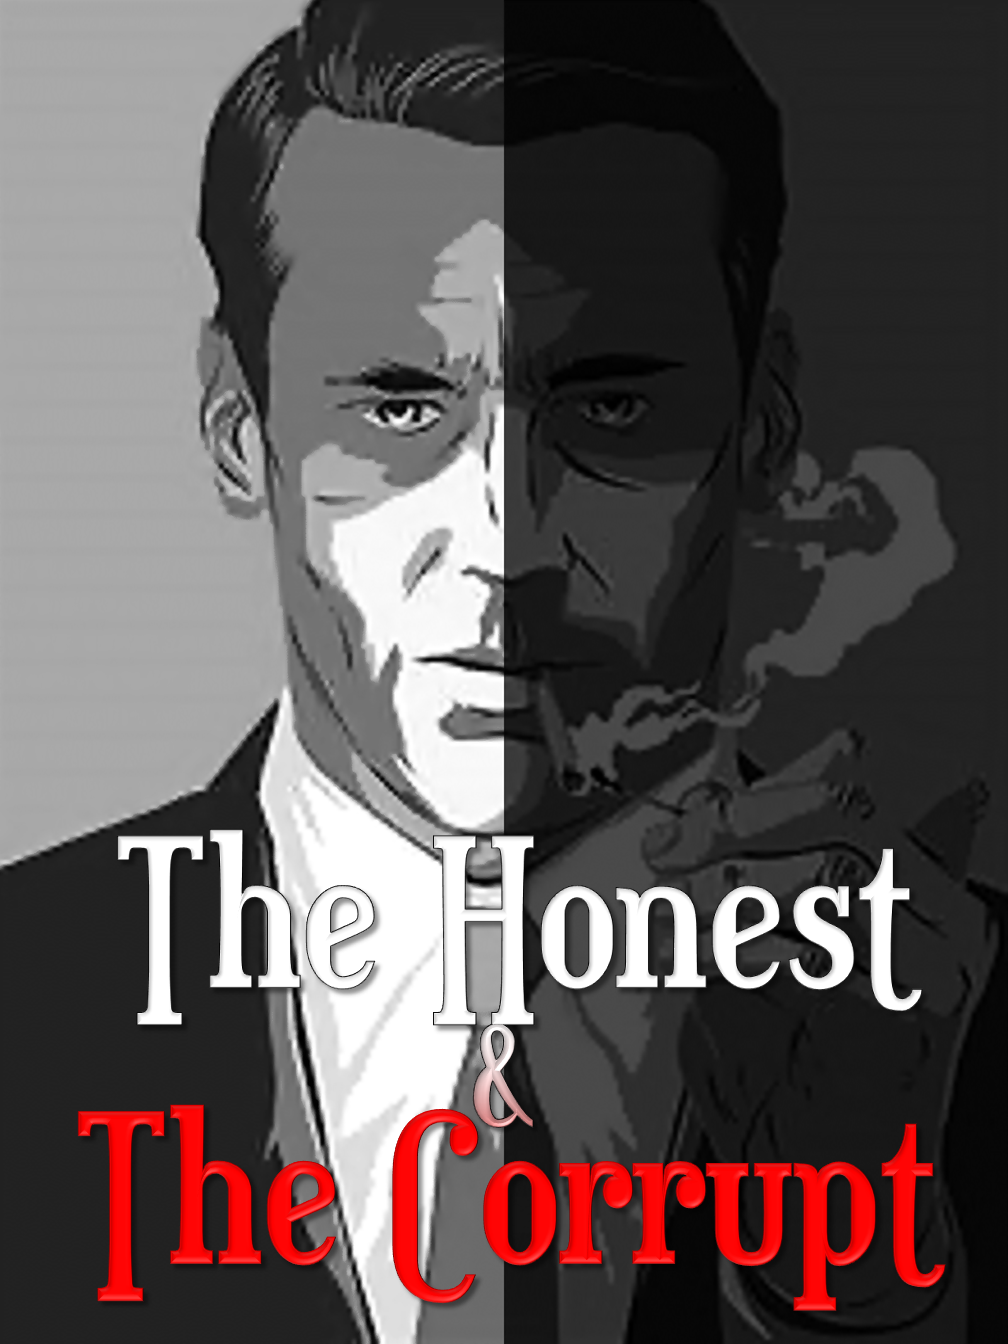 The Honest & The Corrupt